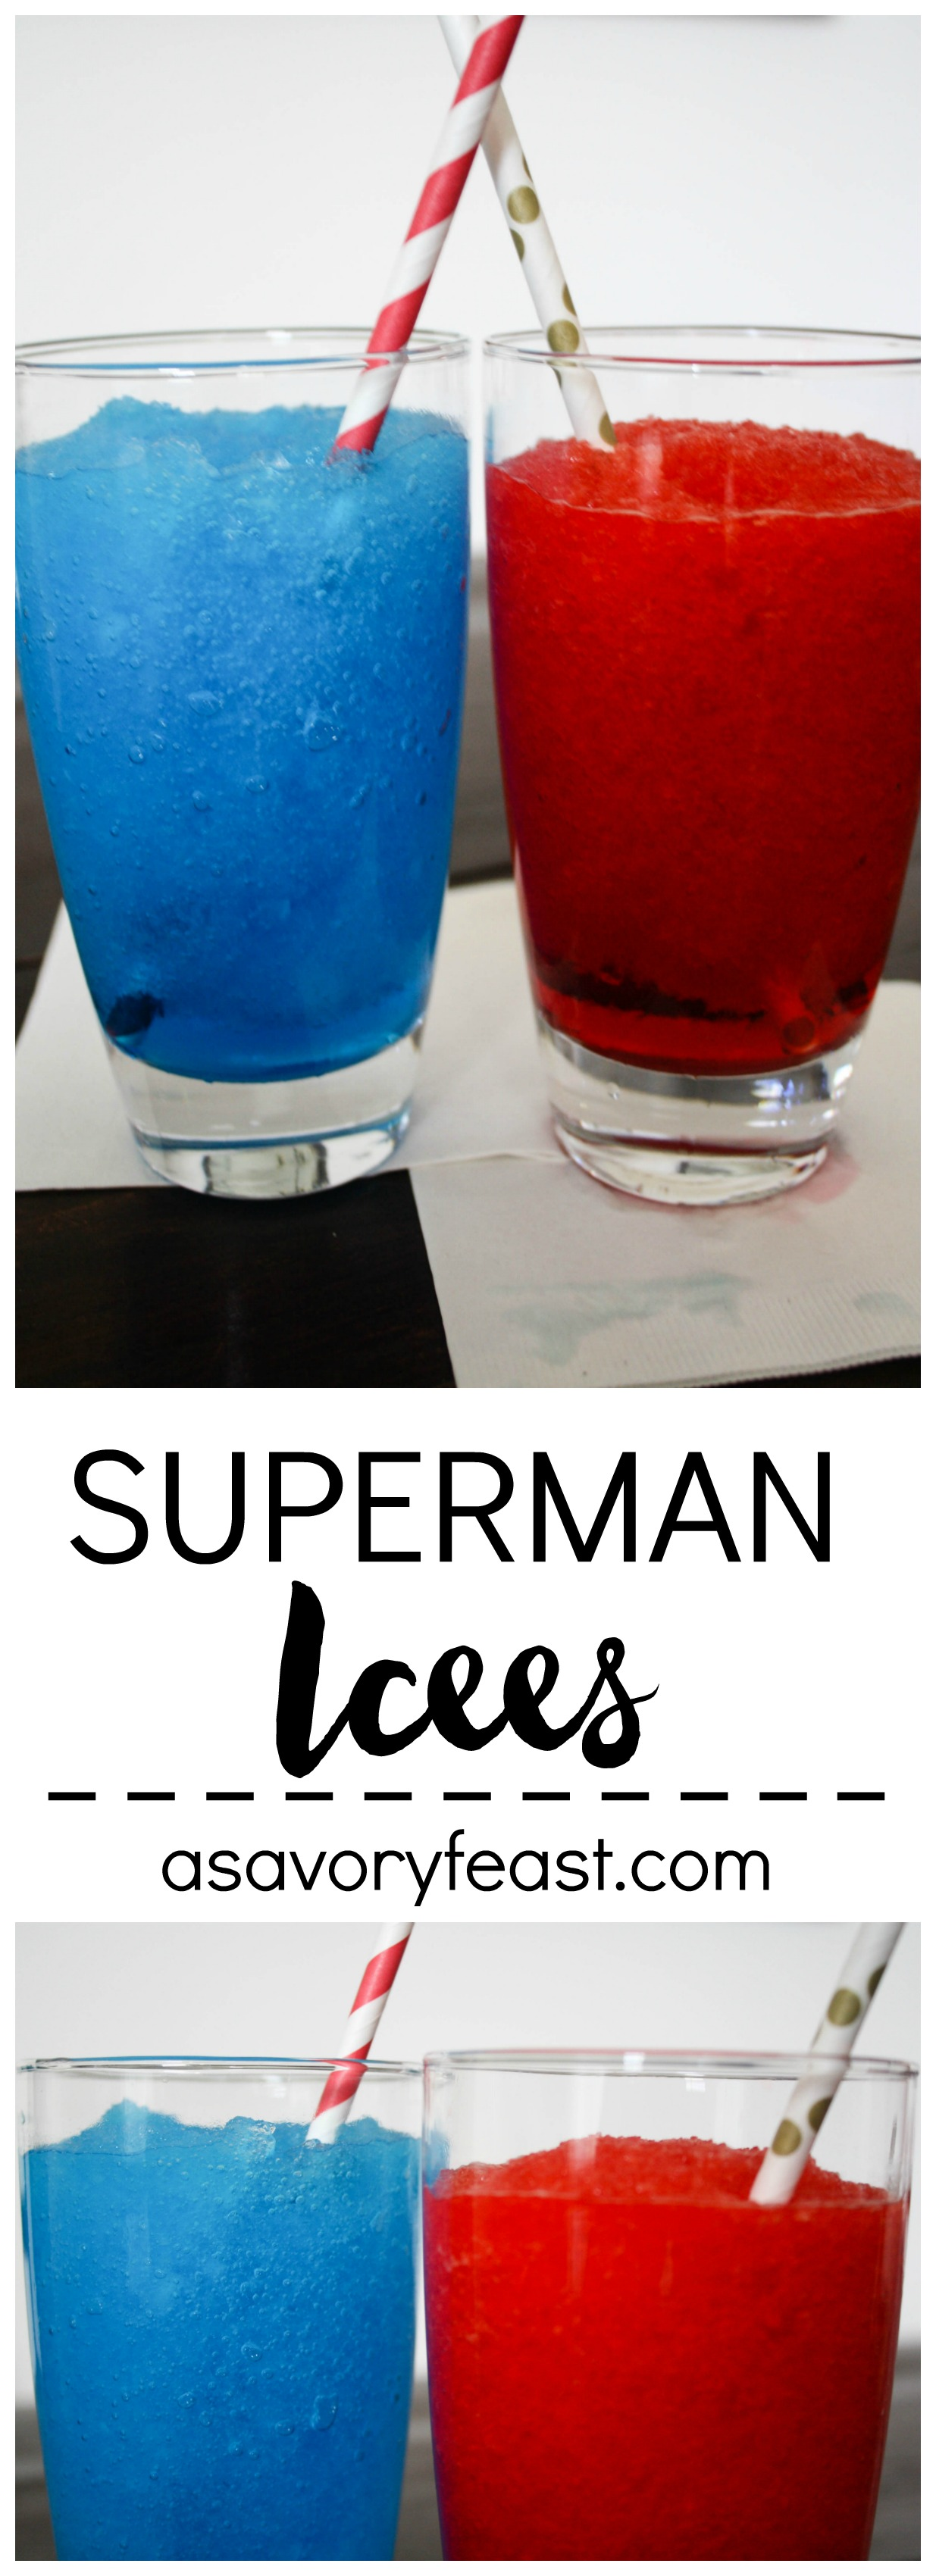 Celebrate the premiere of Batman v Superman with these fun and fruity Superman icees! A sweet, refreshing drink that adults and kids alike will love.